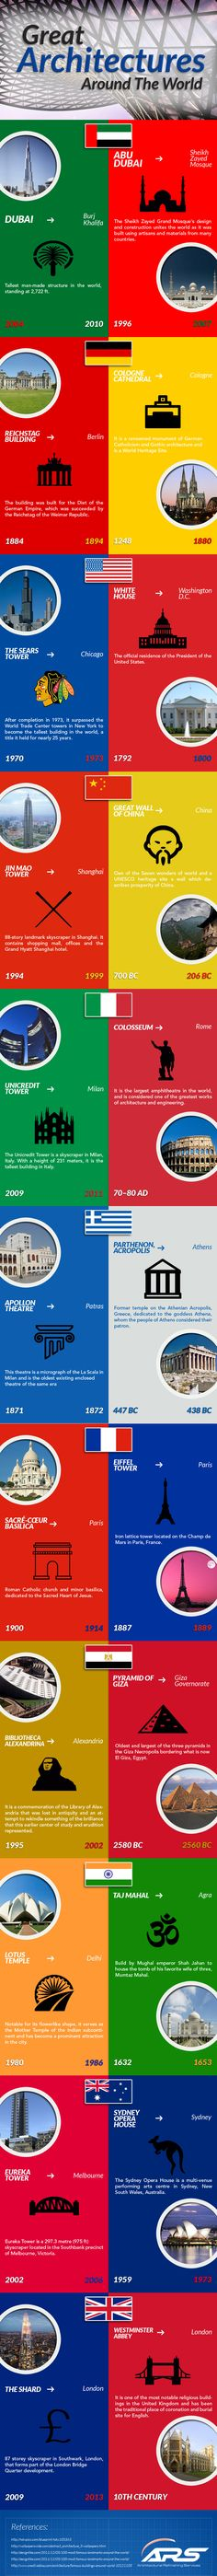 Great Architecture Around the World #infographic #Travel